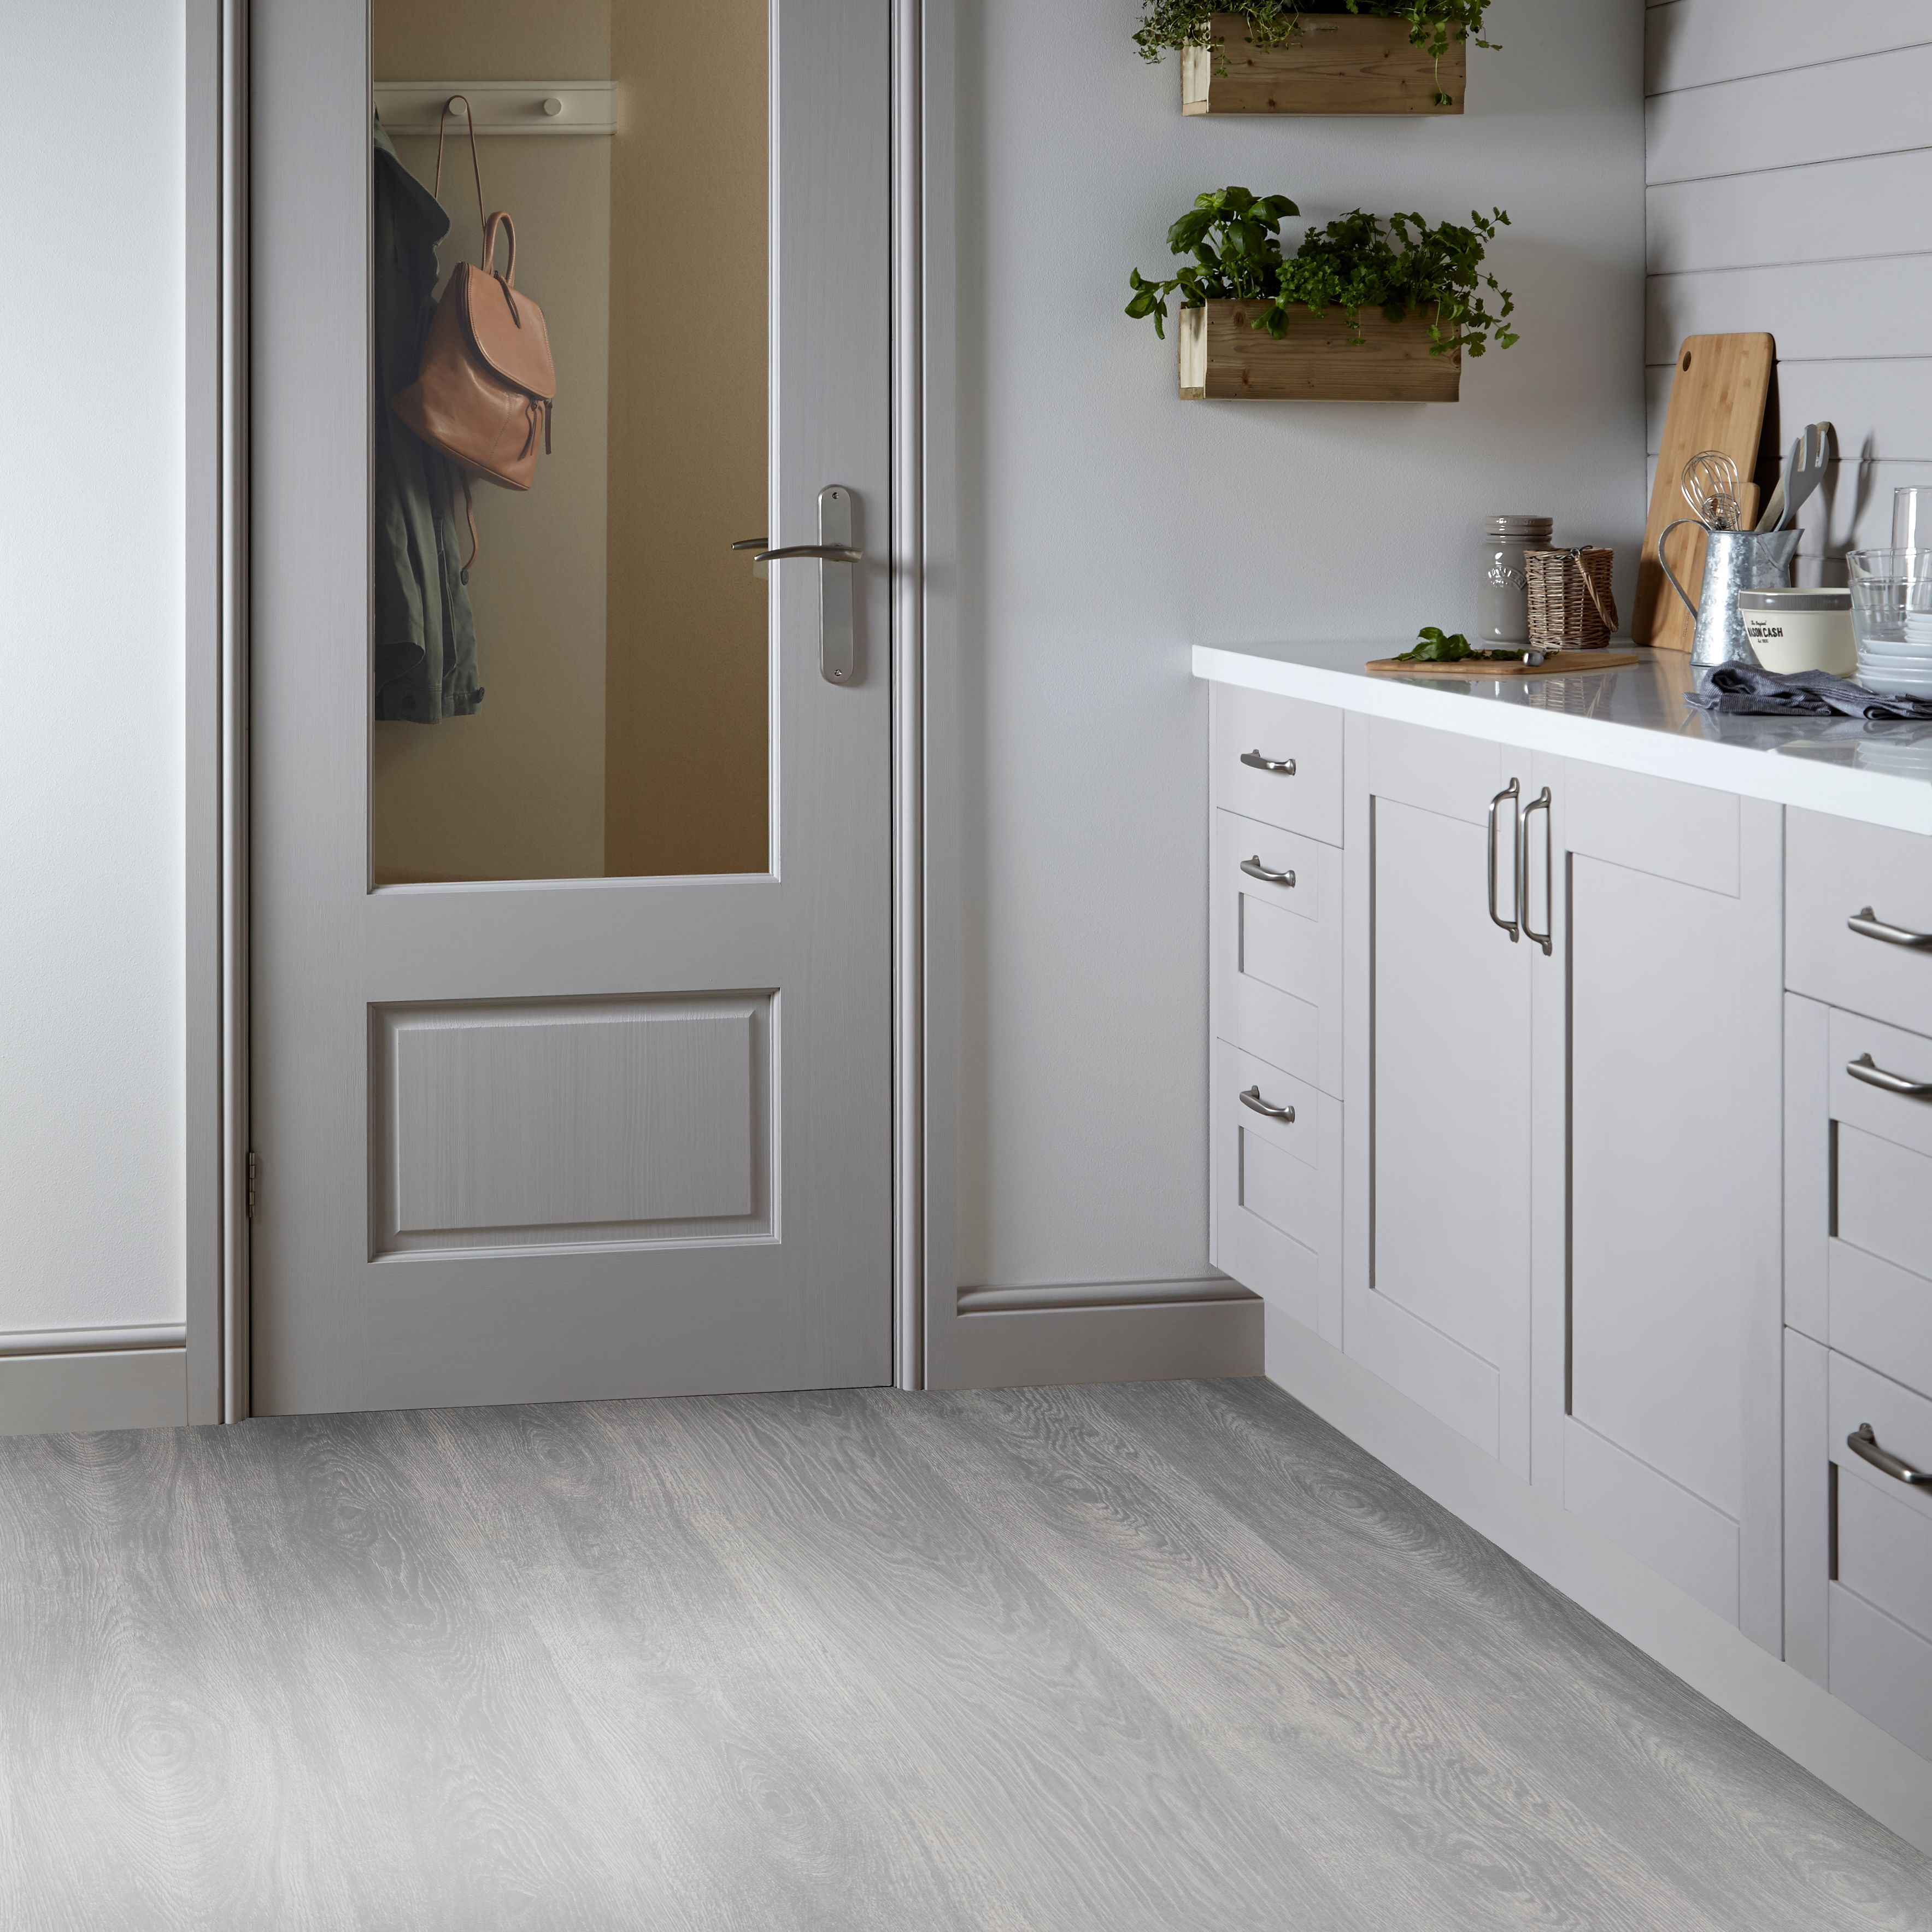 Inia Whitewood Effect Matt Vinyl Flooring 4 M² Departments Diy At B Q